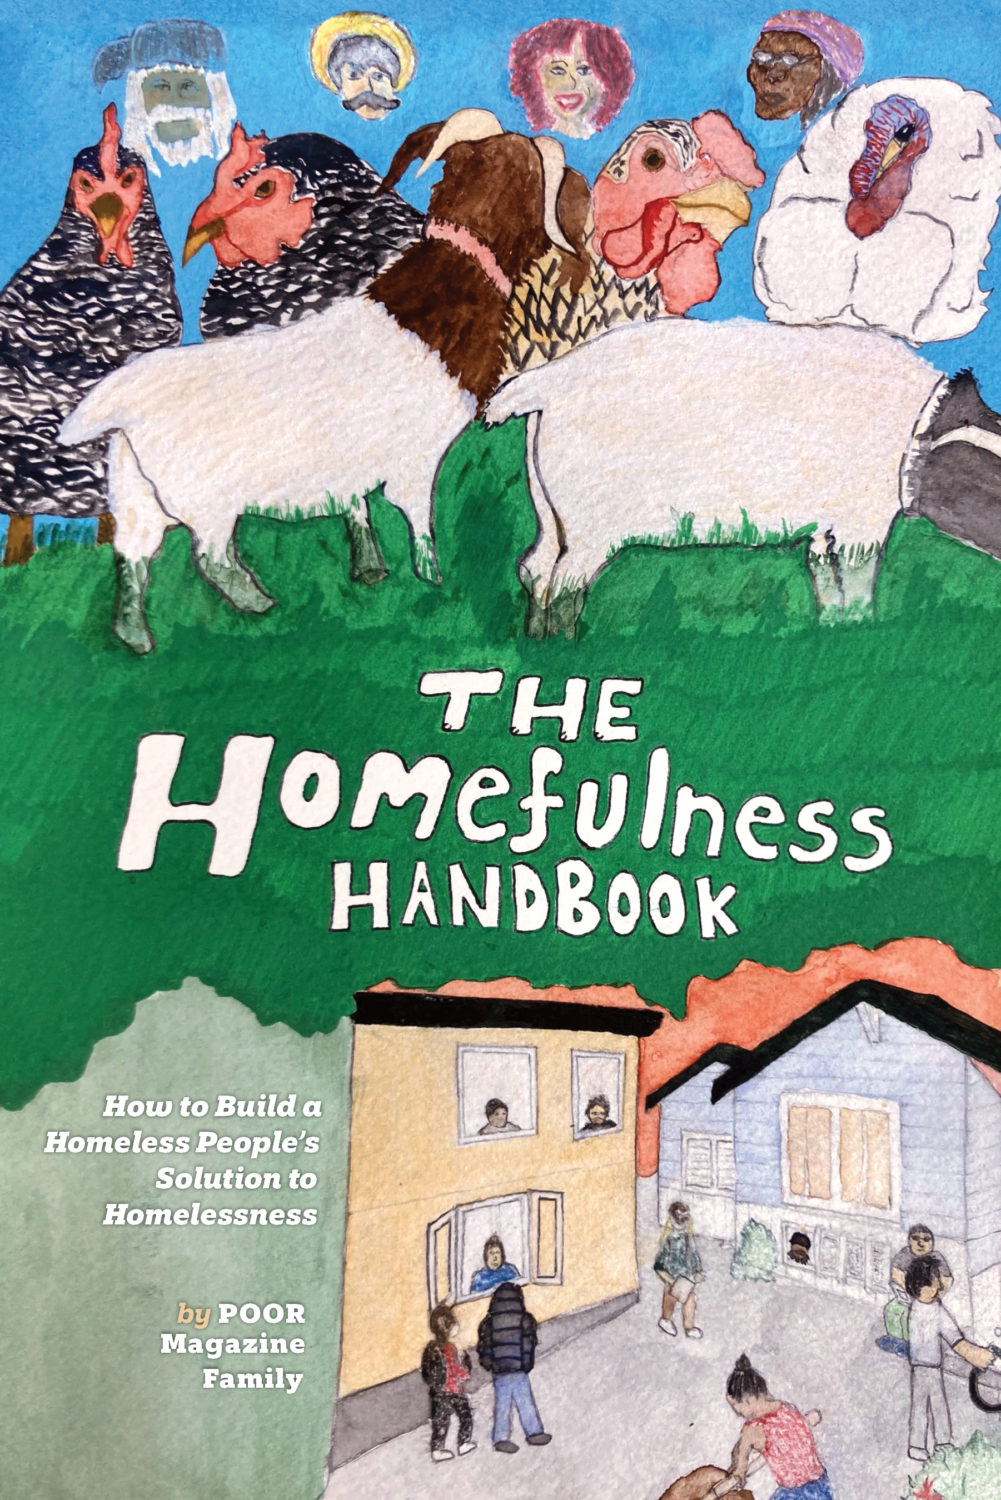 Homefulness-Handbook-by-POOR-Magazine-2021, 'Maybe you shouldn't be building this project', Local News & Views